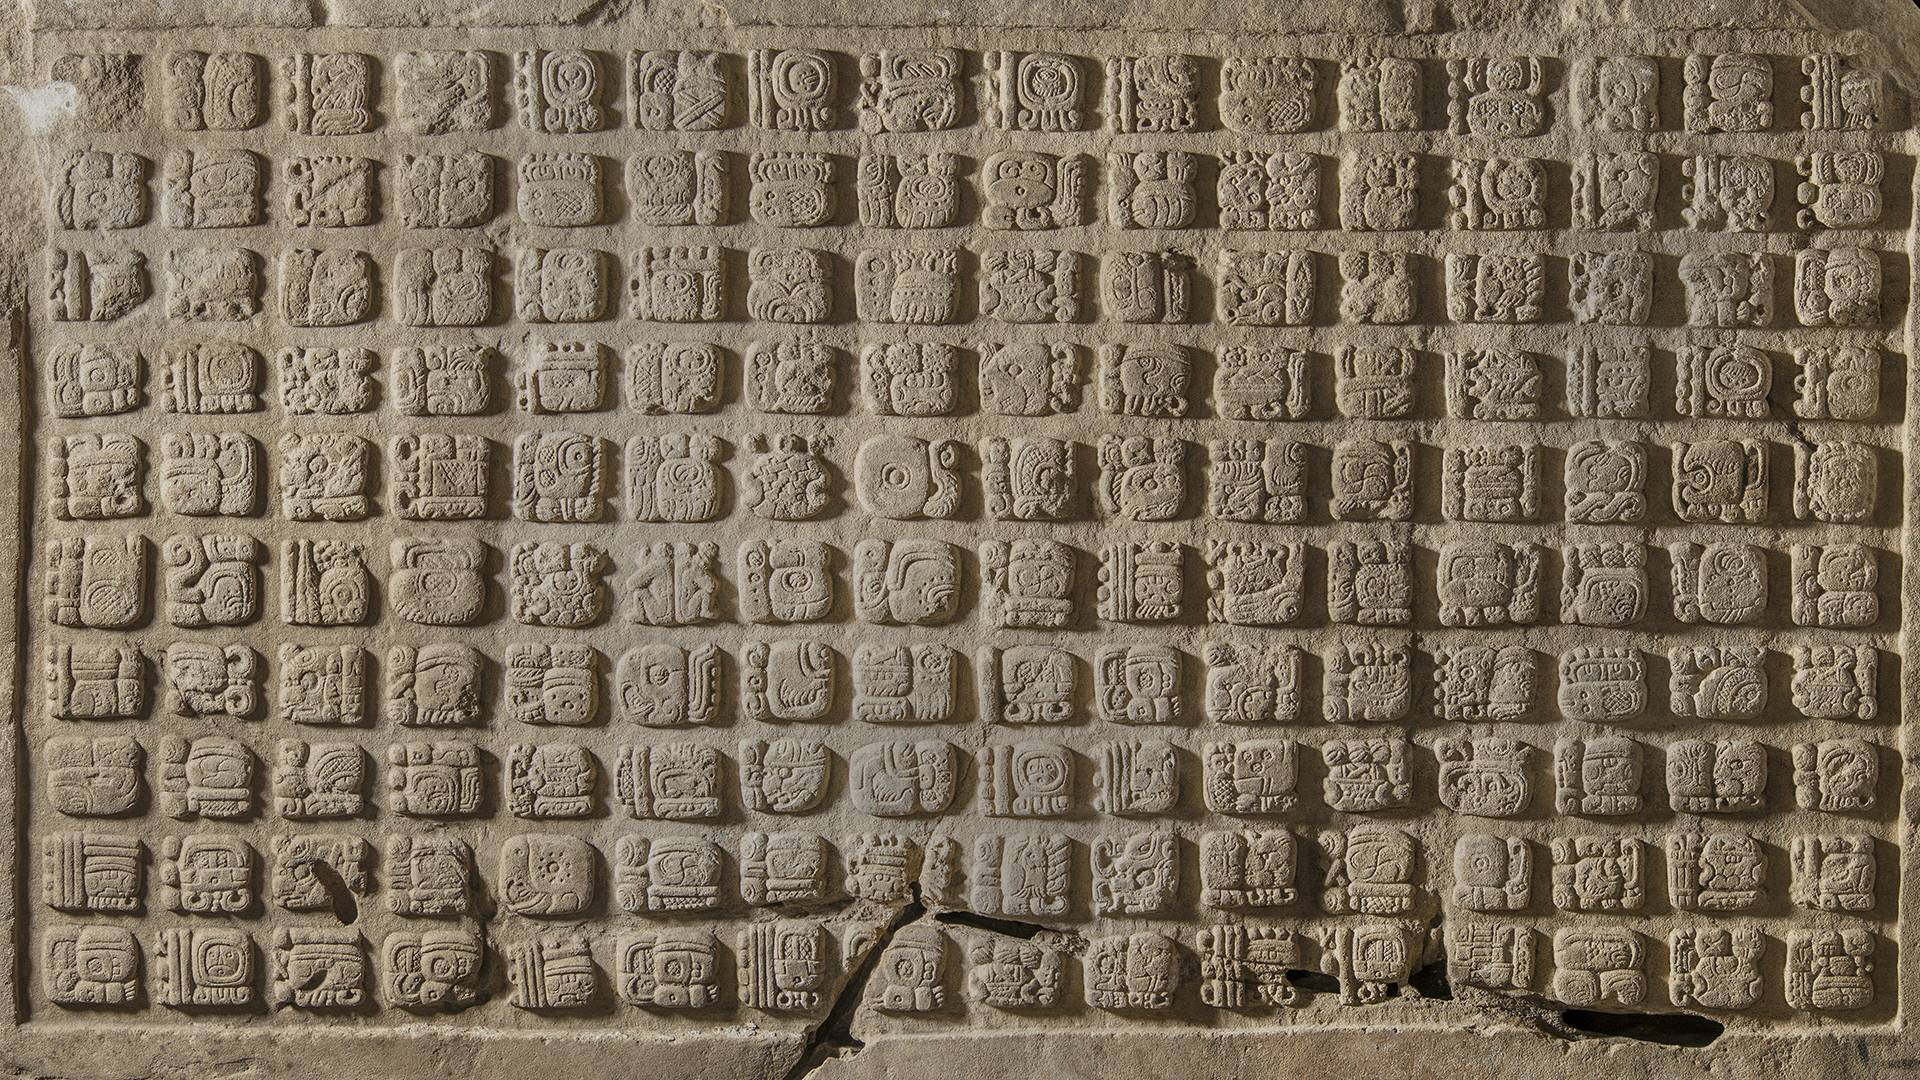 Maya glyphs in stucco at the Museo de Sitio in Palenque.